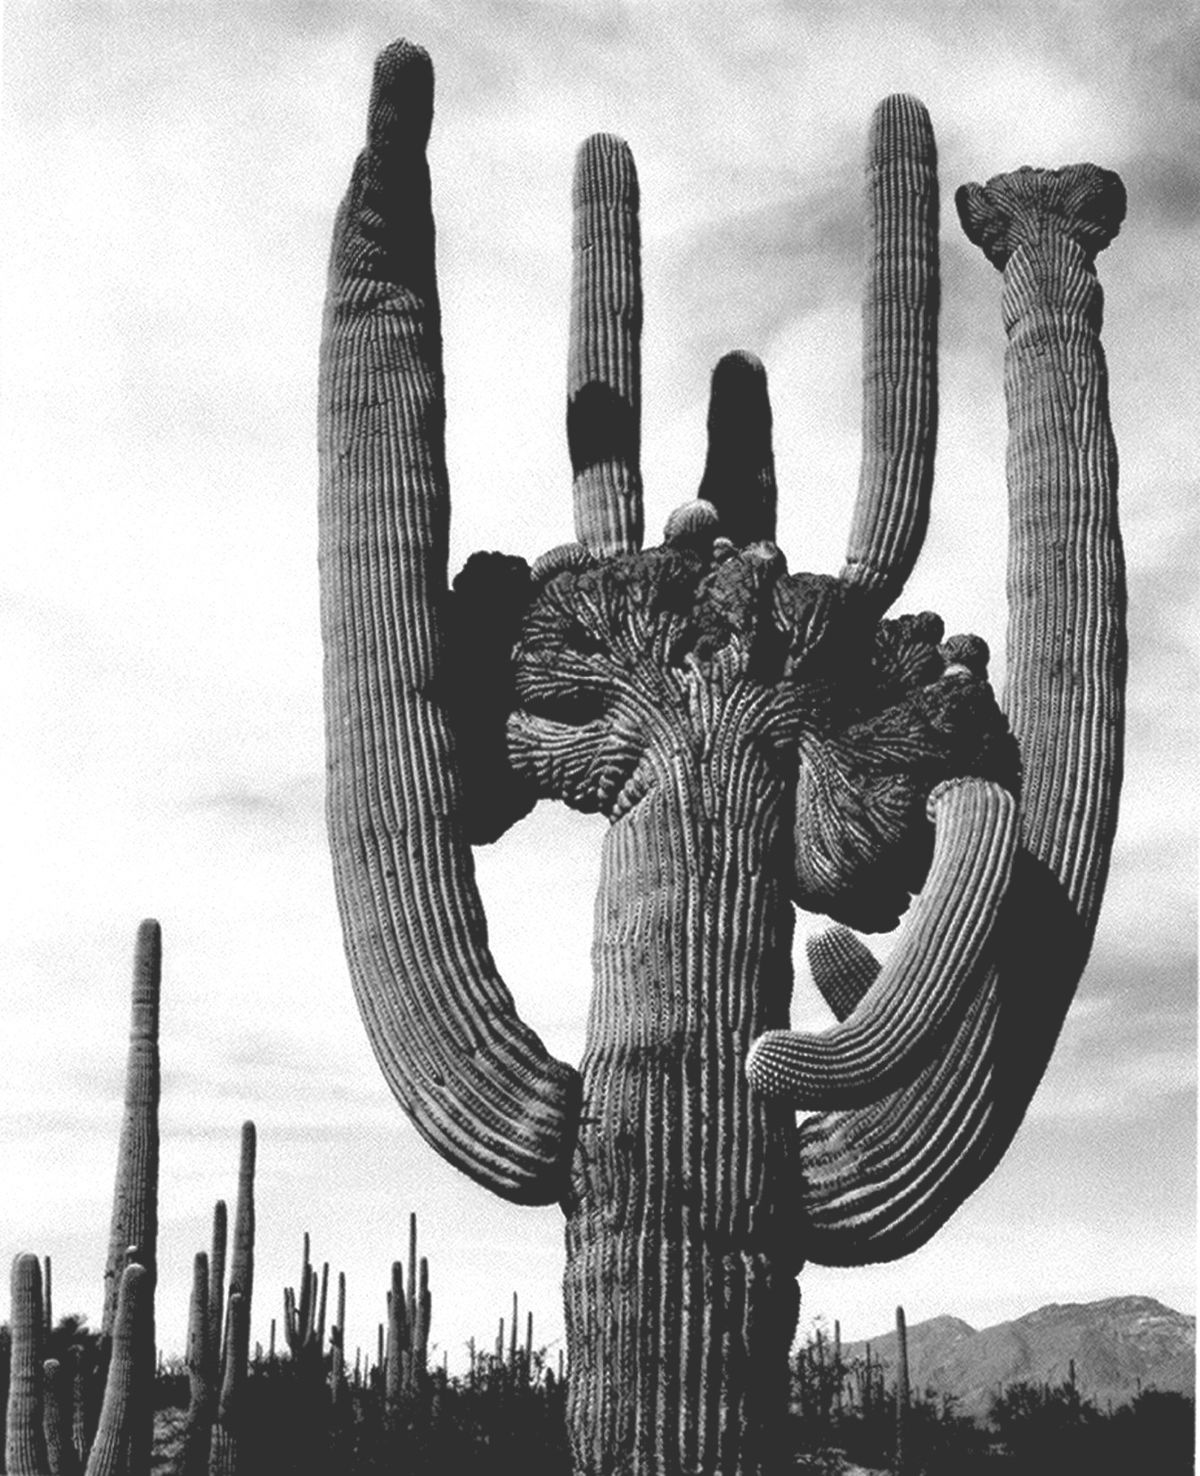 cactus - Wiktionary